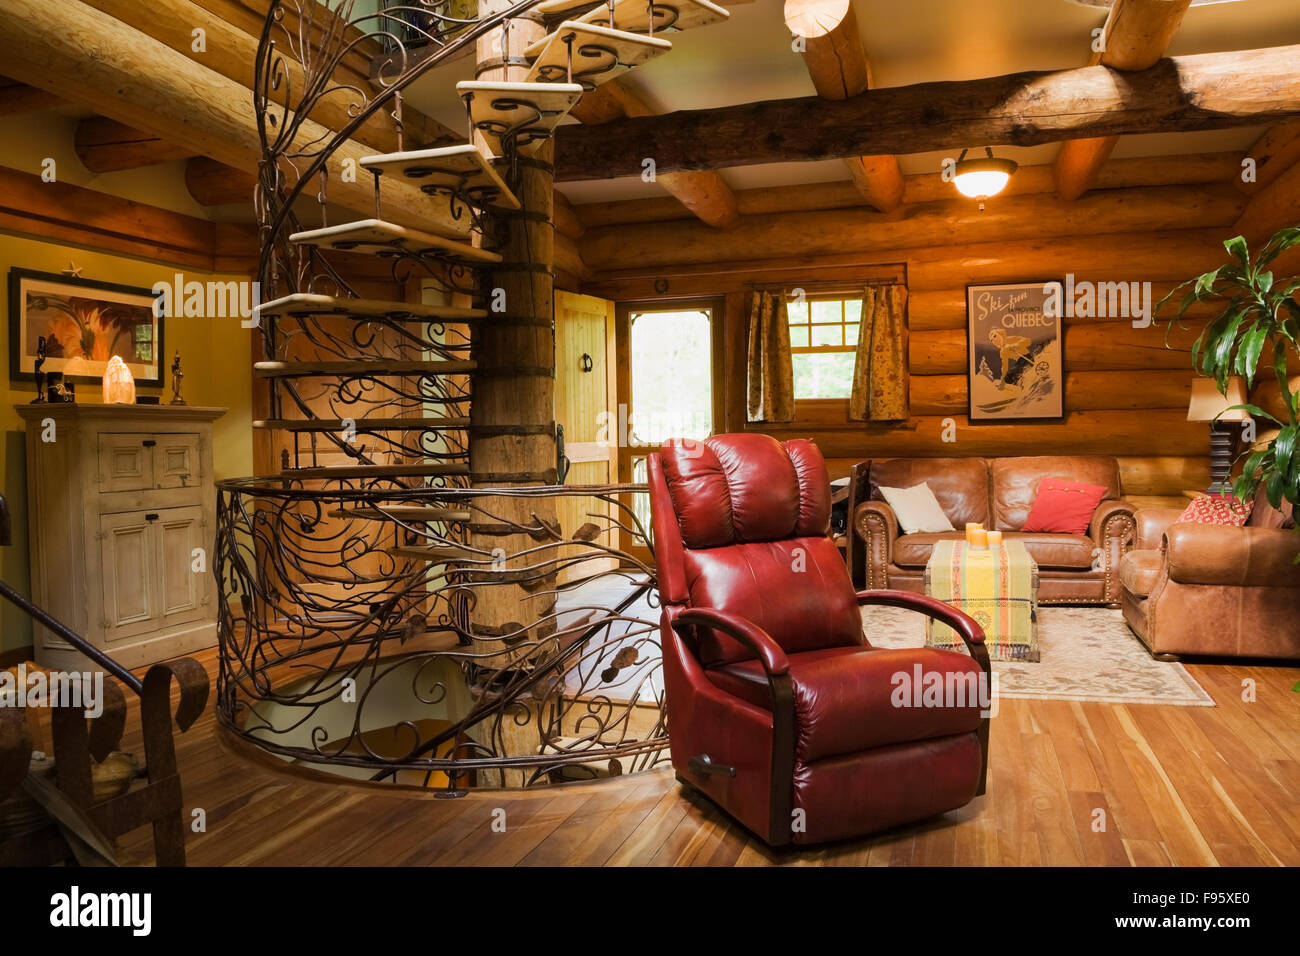 Wrought Iron Living Room Furniture Spiral Shaped Wood And Wrought Iron Staircase And Red Leather